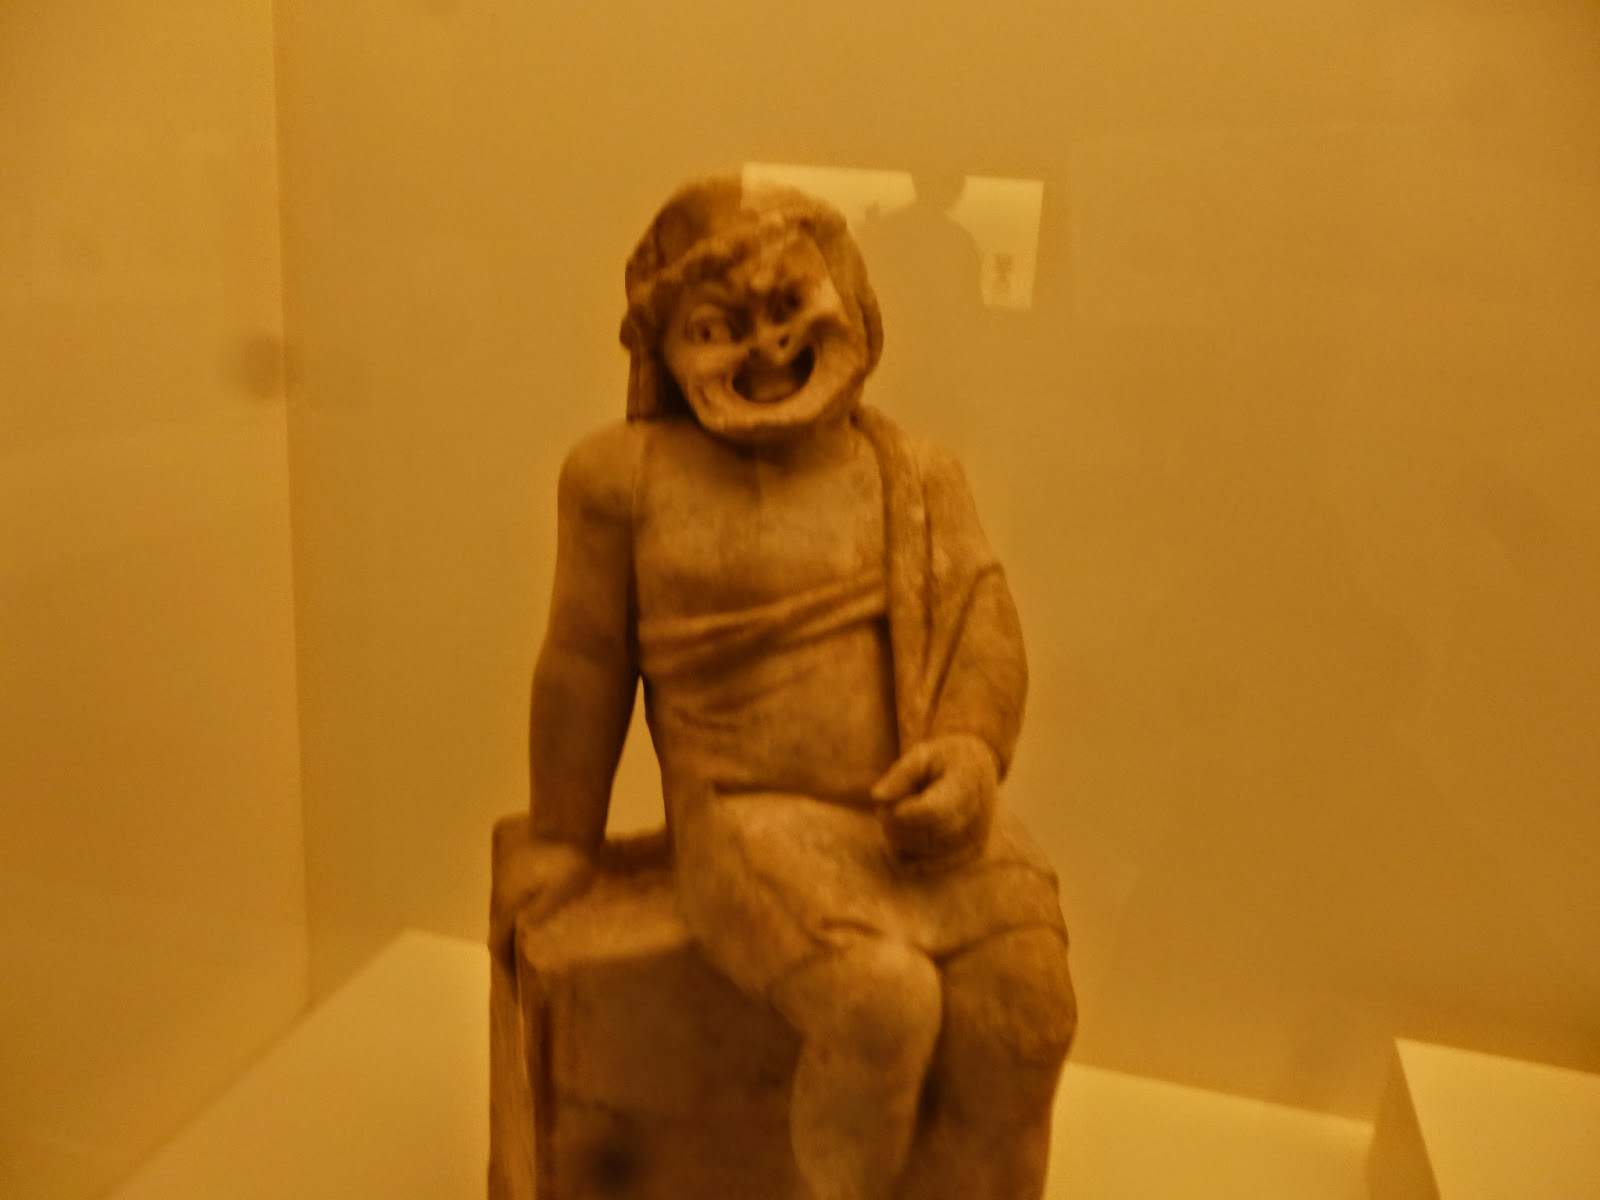 Laughing Statue - Bendigo Art Gallery